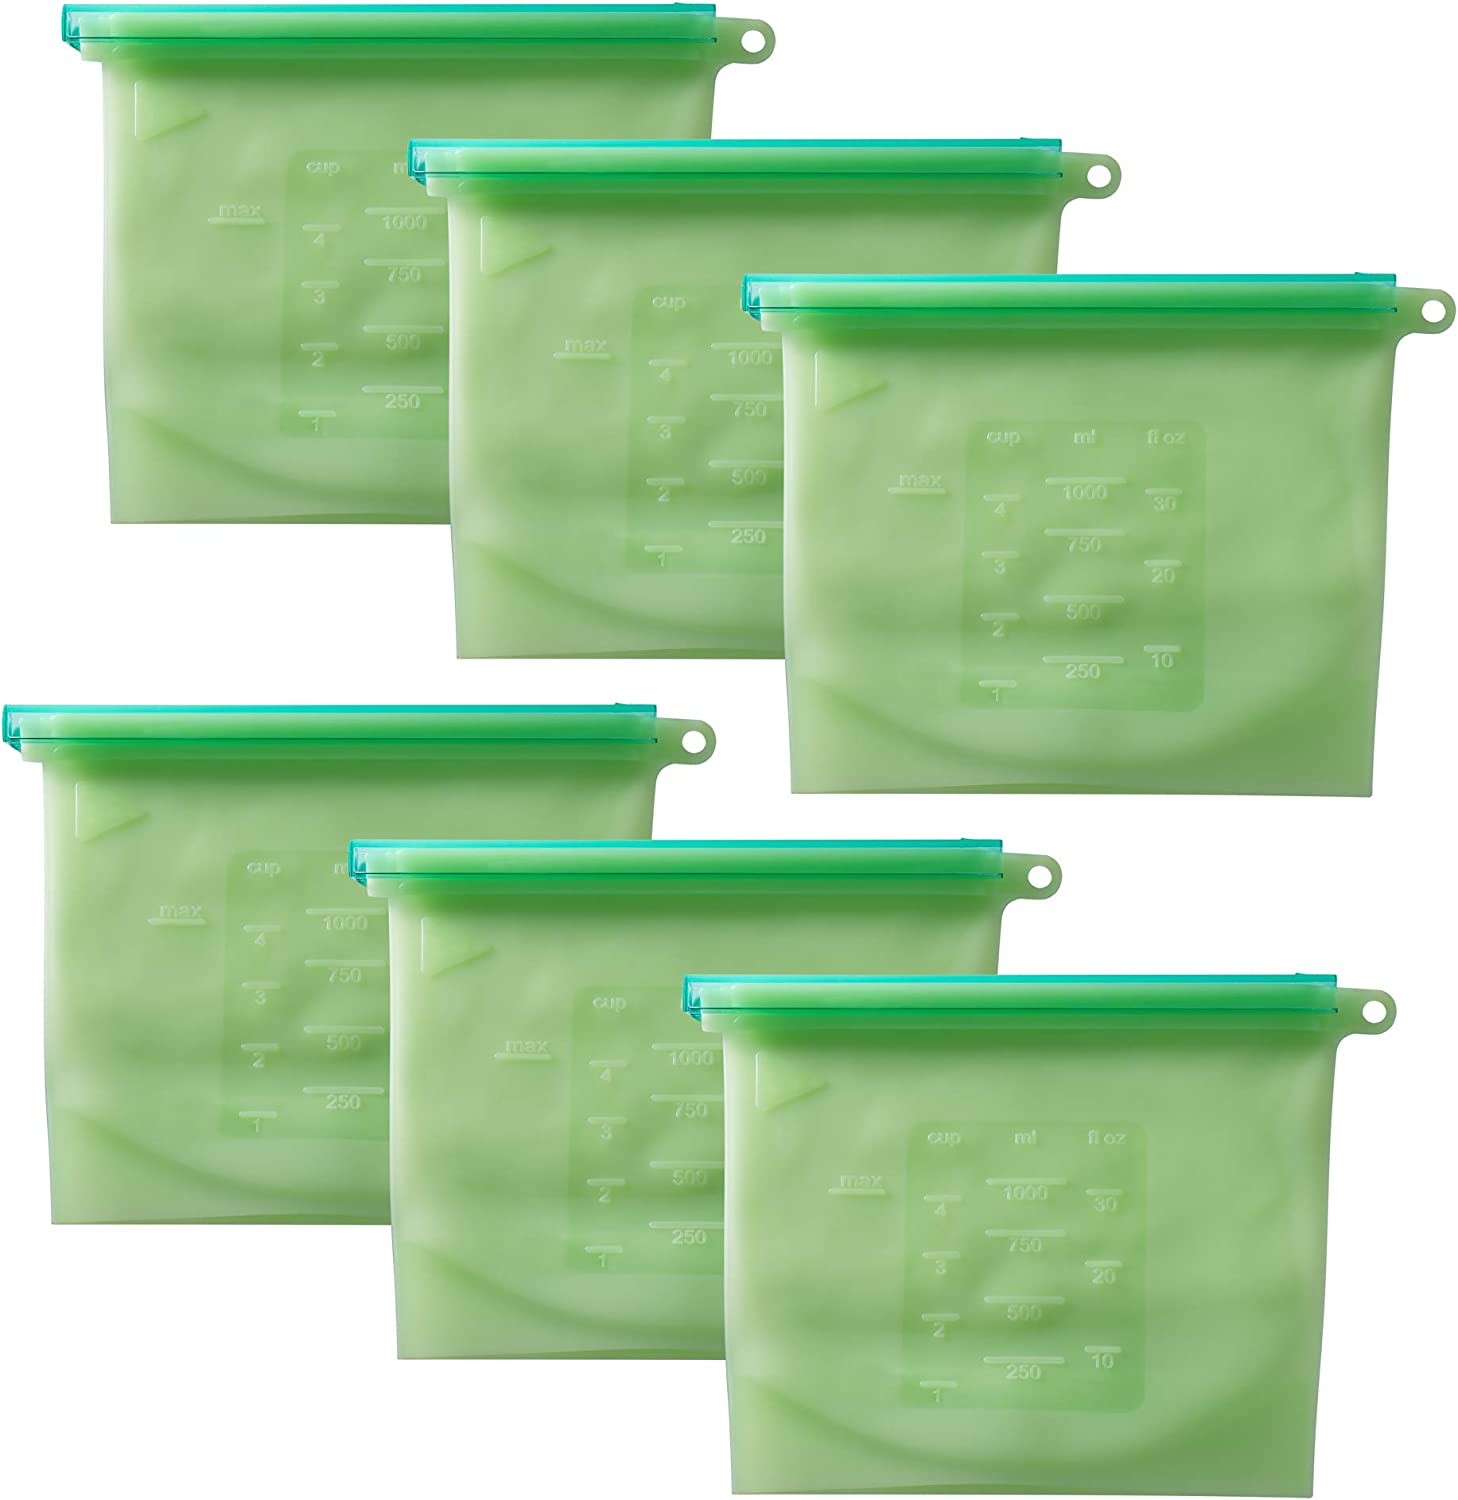 PrimeMed Reusable Silicone Food Storage Bags - Airtight Food Preservation Container for Vegetables, Meat, Fruit & More (Green, 1000 mL) (6 Pack)